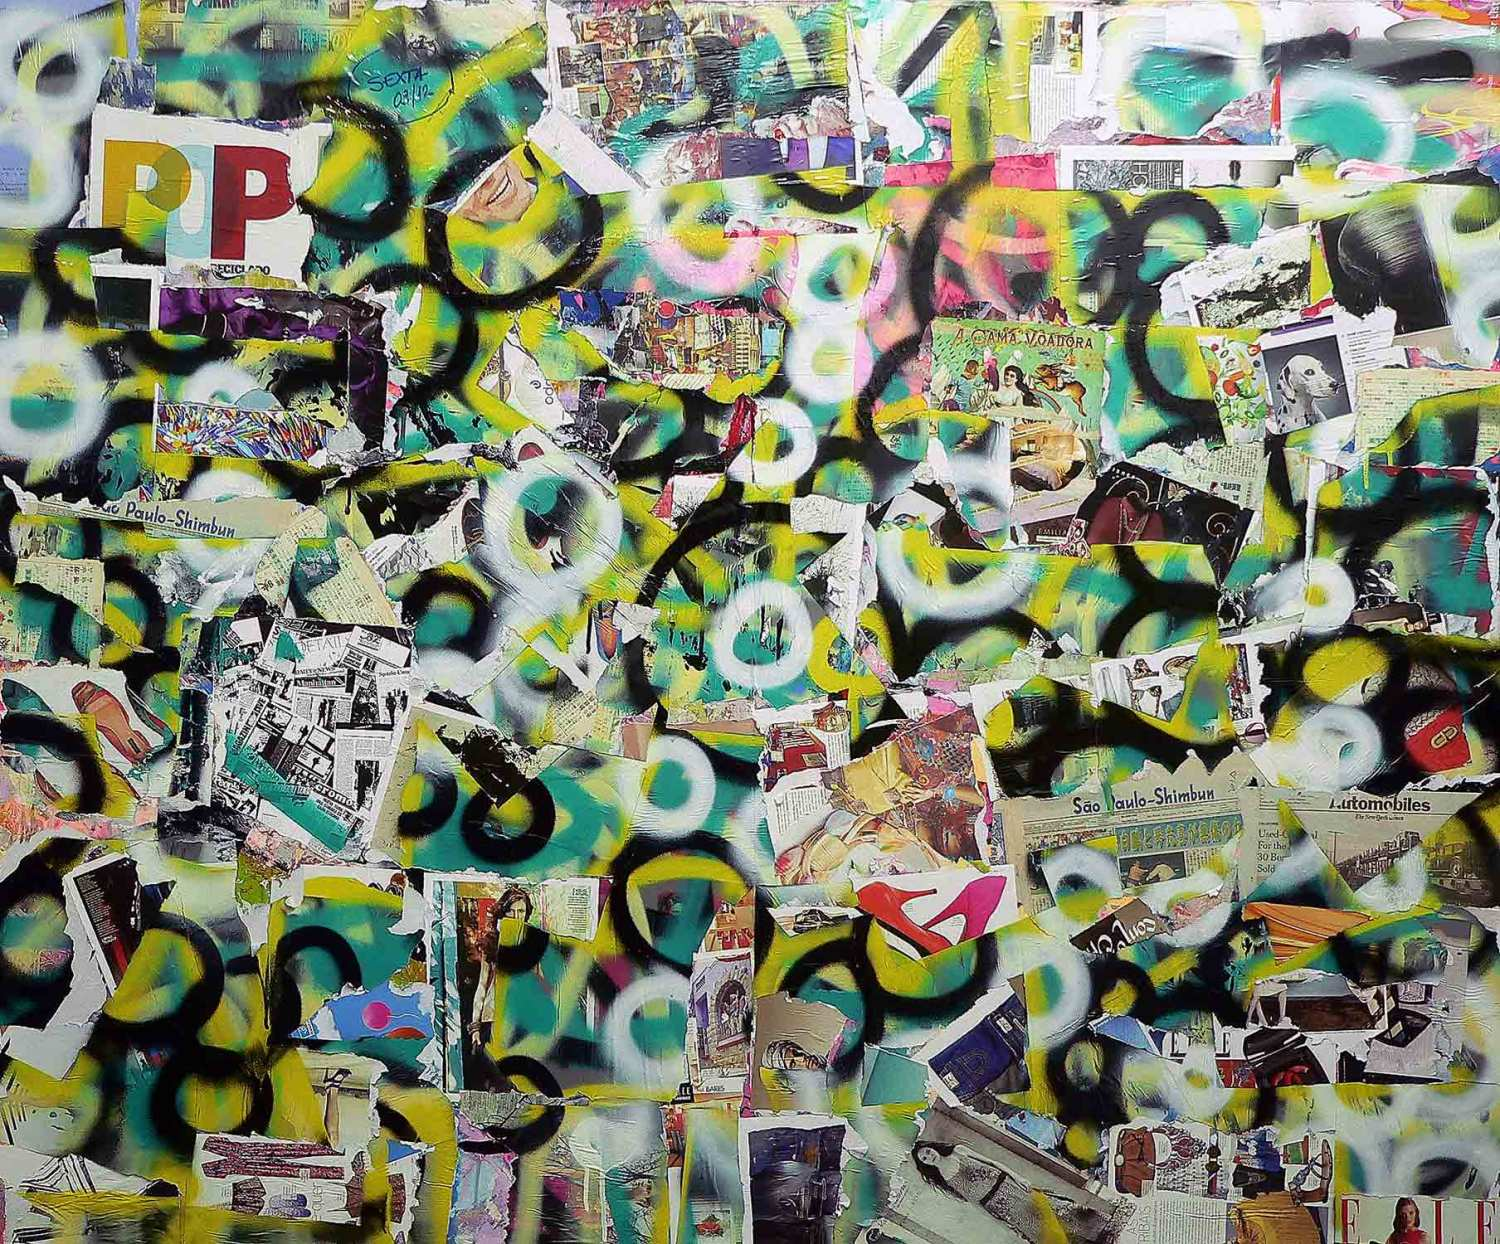 pop - 170 x 225 cm - spray paint, markers and collage on canvas - 2010